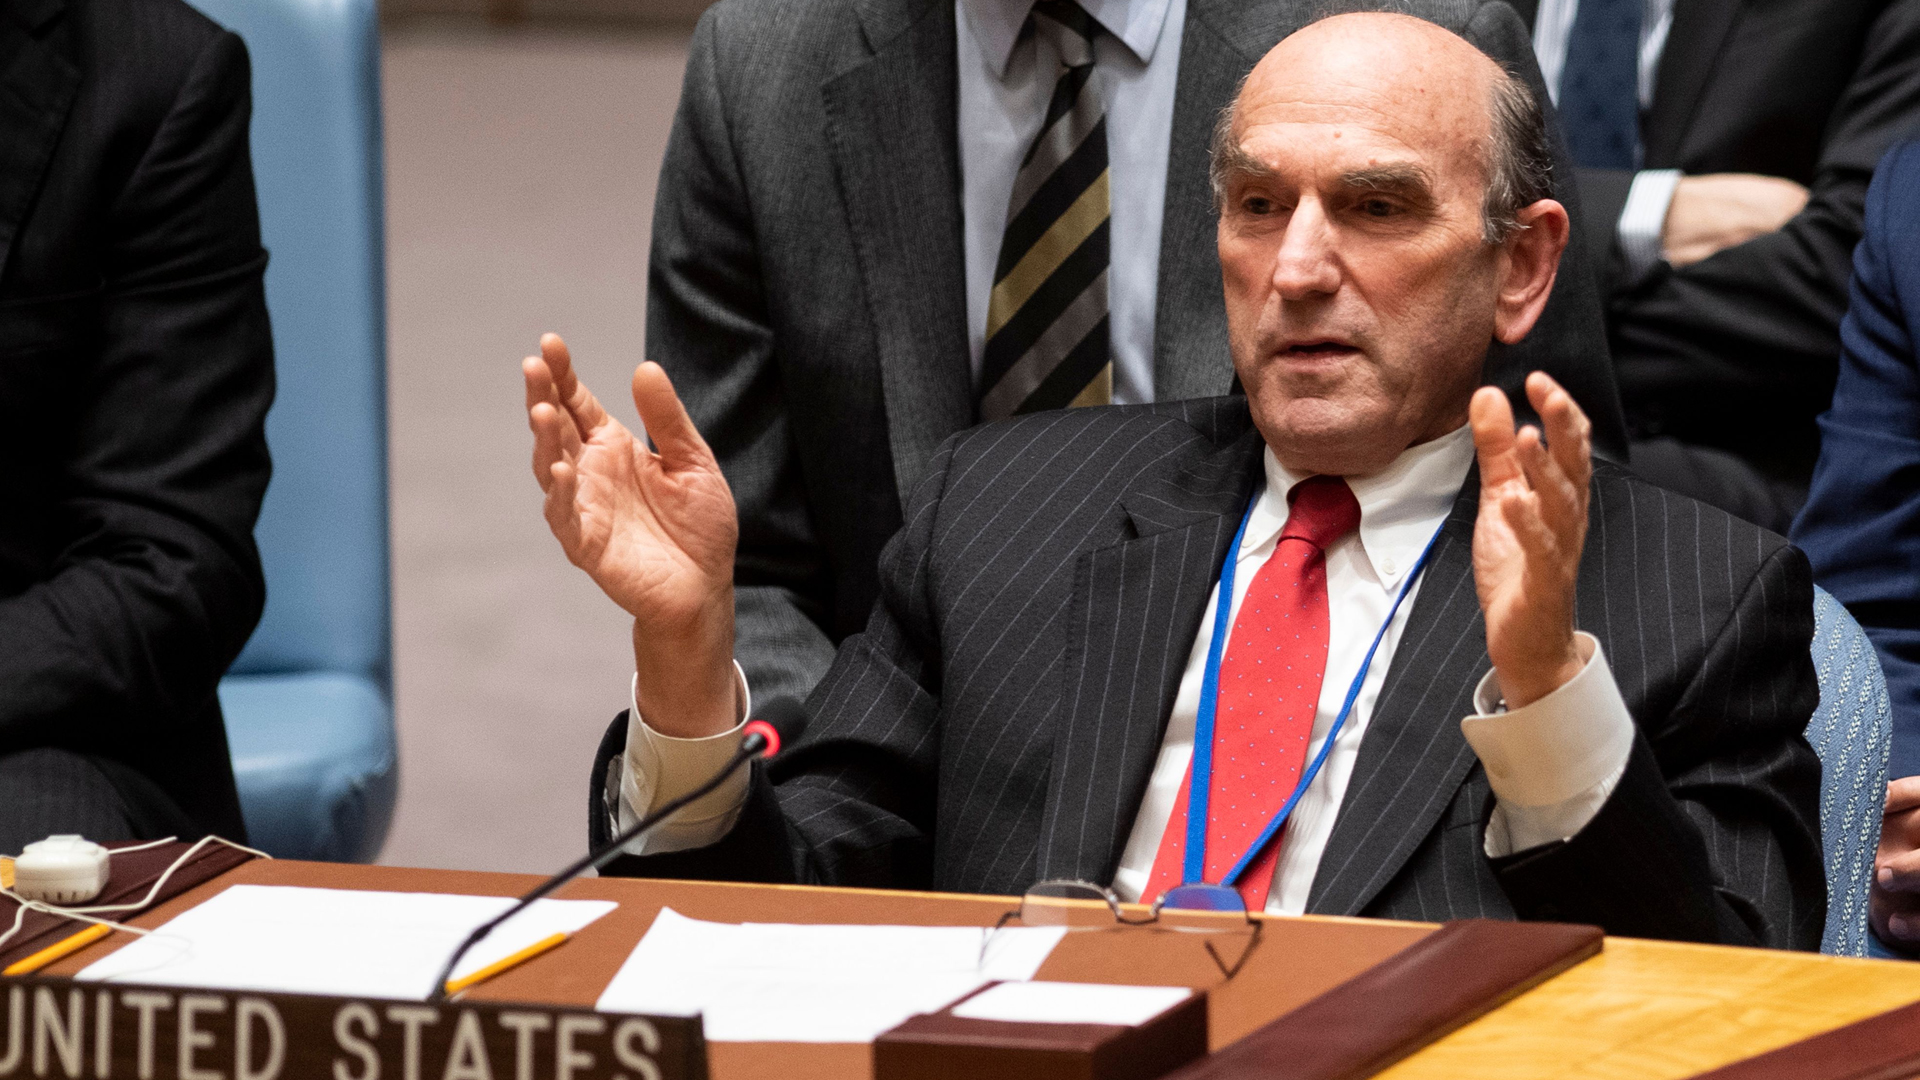 Elliott Abrams, the U.S. envoy for Venezuela, speaks at the United Nations Security Council meeting on Venezuela on Feb. 26, 2019, at the United Nations headquarters in New York City. (Credit: Johannes Eisele/AFP/Getty Images)